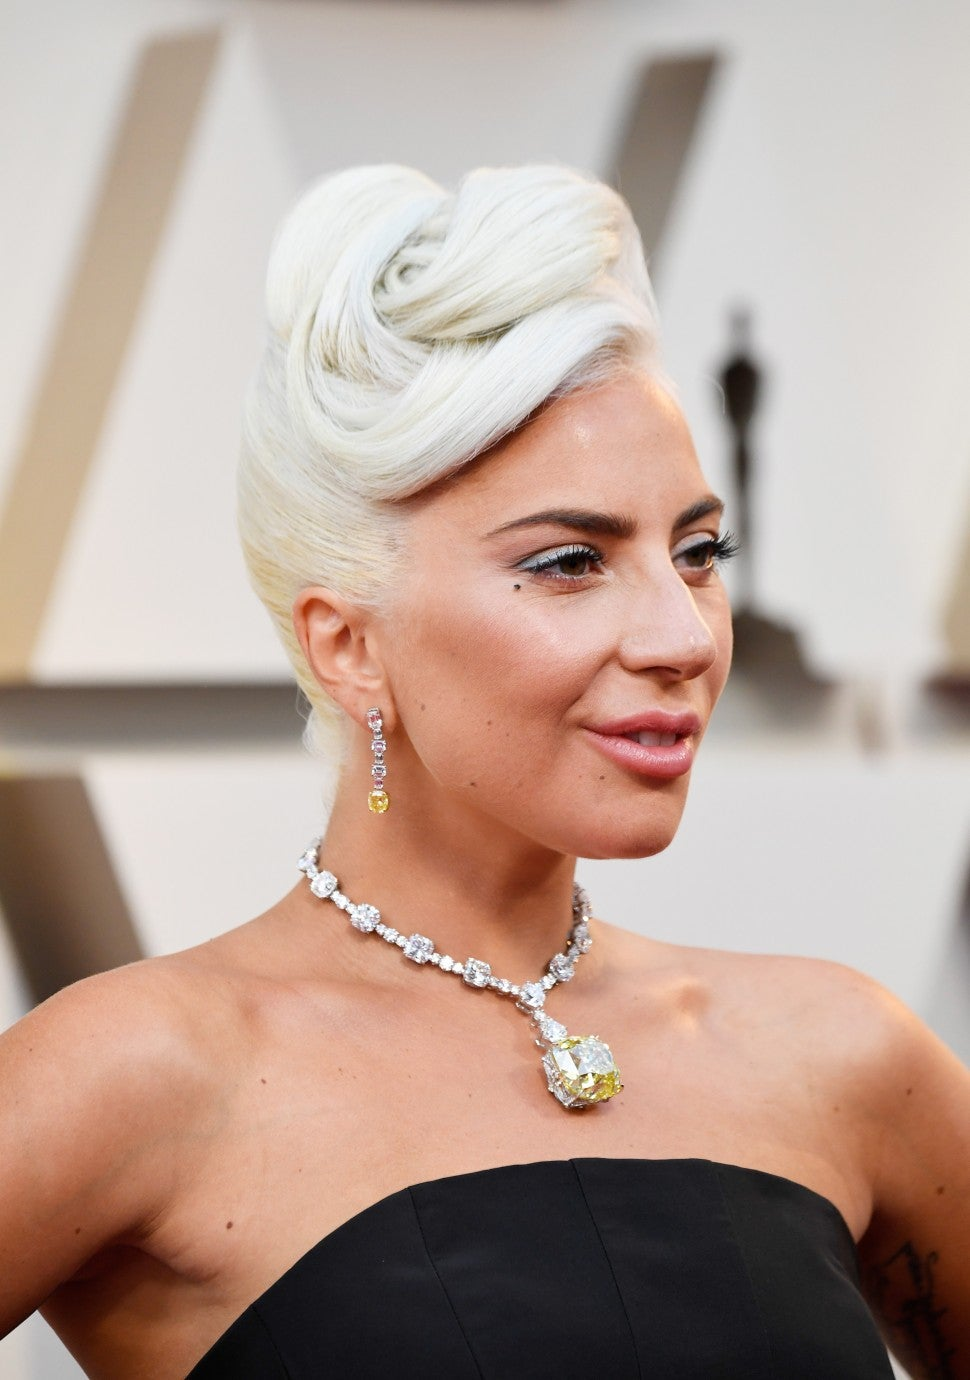 Lady Gaga closeup 2019 Oscars